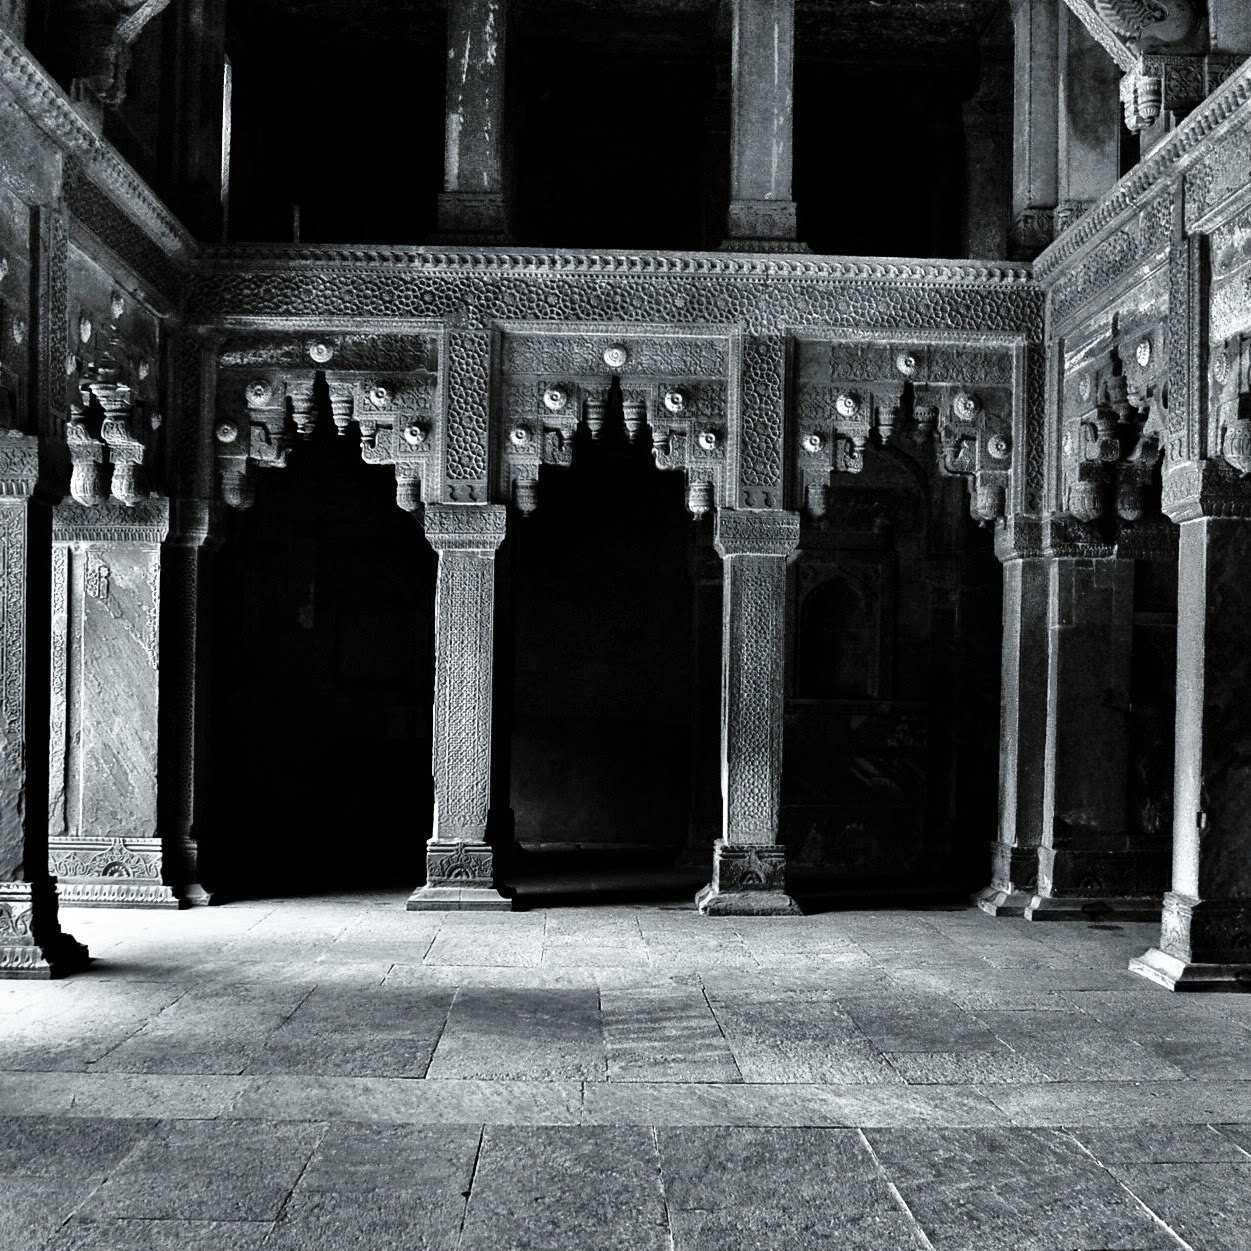 Taj Mahal Agra India Black and white photographs monochrome beautiful